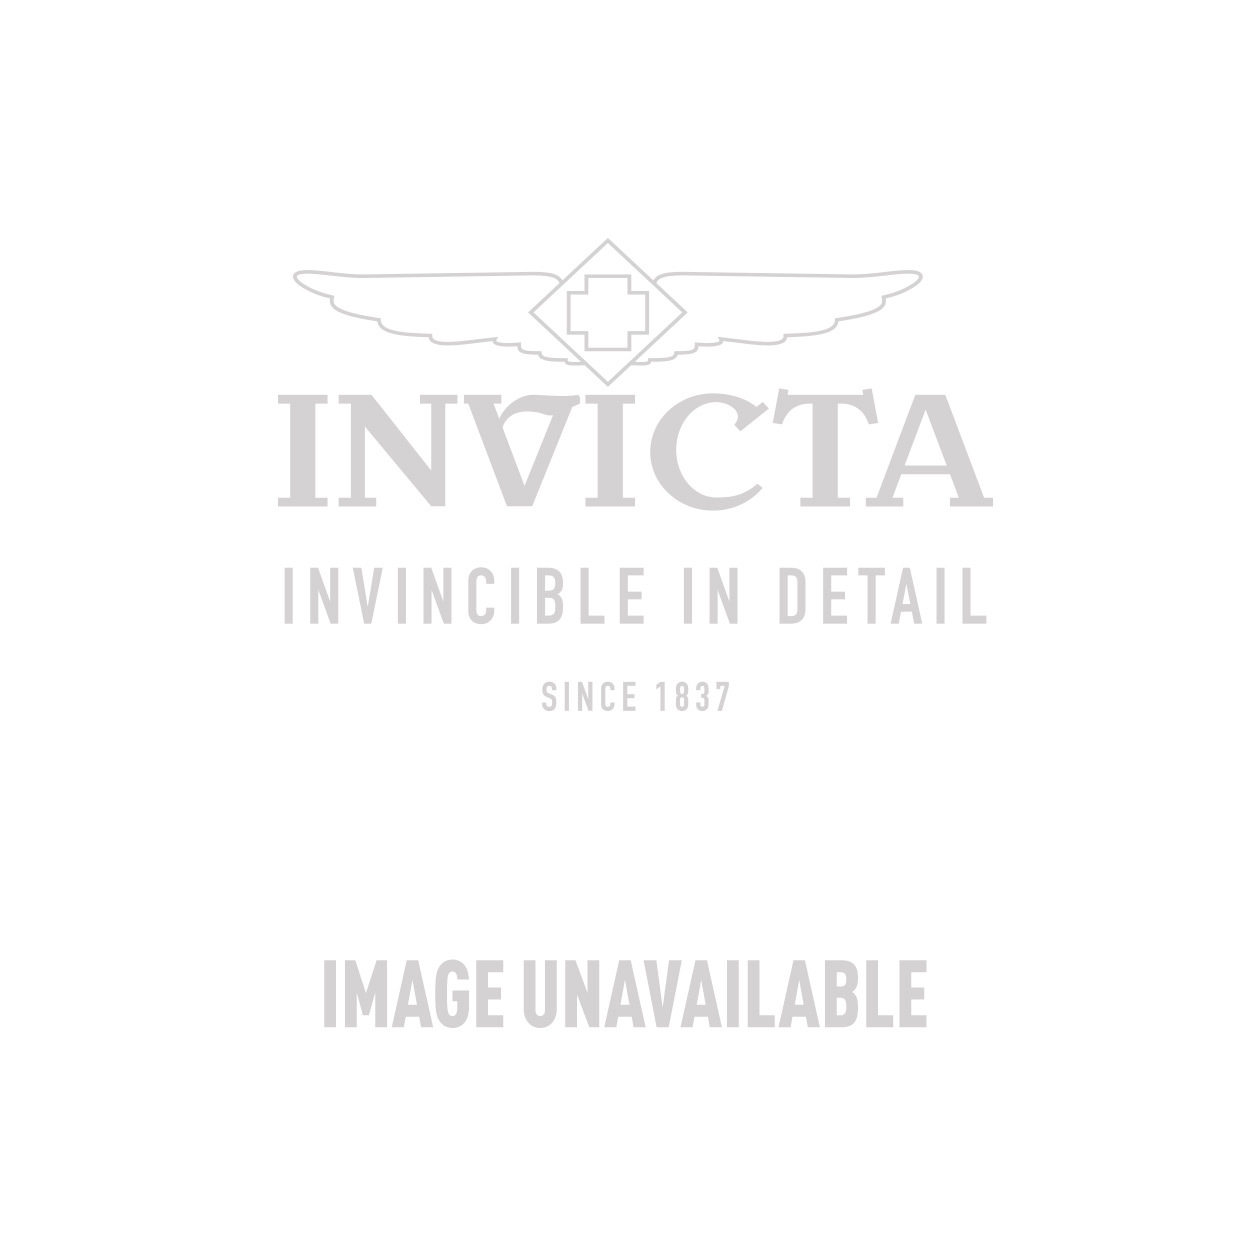 Invicta Excursion Swiss Made Quartz Watch - Stainless Steel case with Steel, Black tone Stainless Steel, Polyurethane band - Model 90056